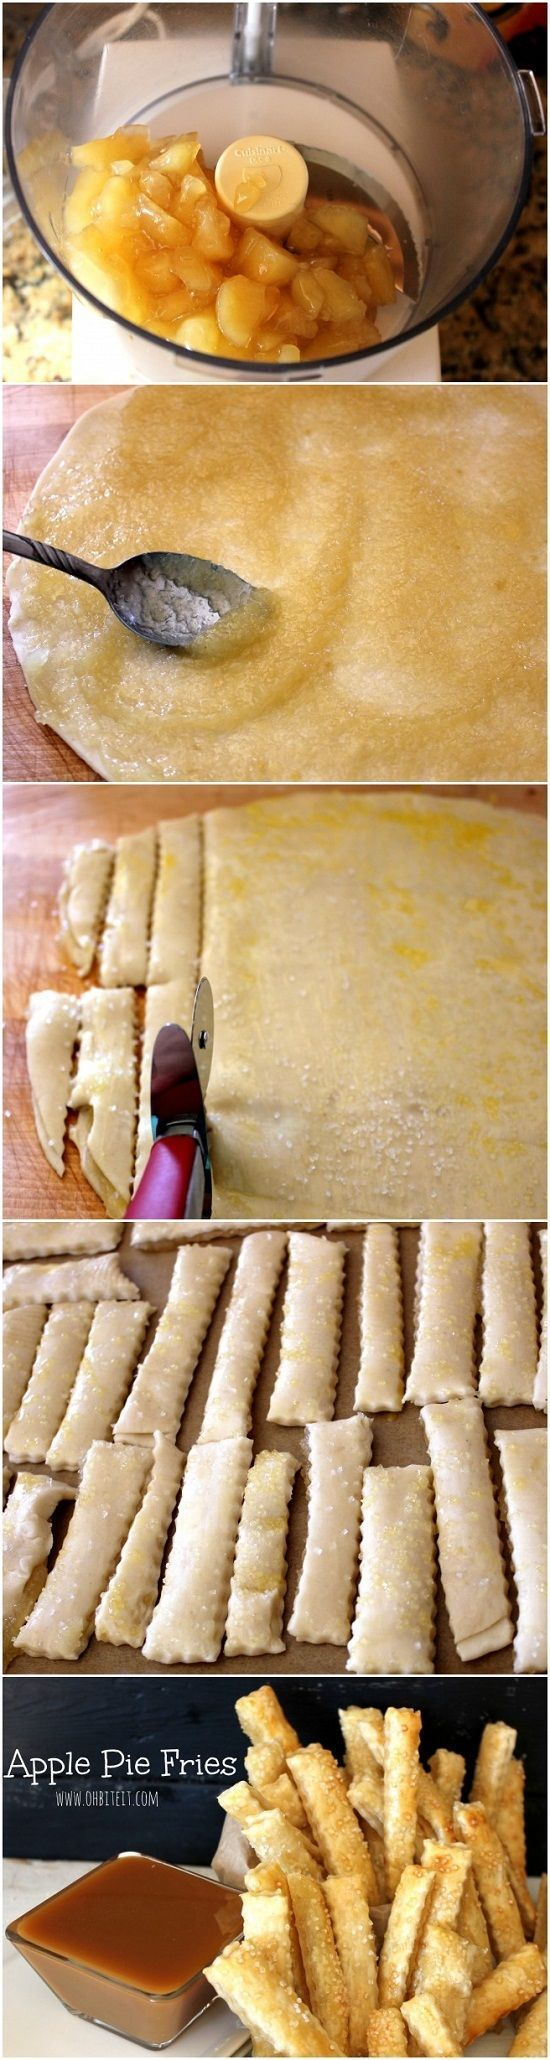 Apple Pie Fries - OMG This will be amazing with YIAH Country Baked Apple Pie Baking Spice and a sprinkle of YIAH Sweet Orange Sugar..